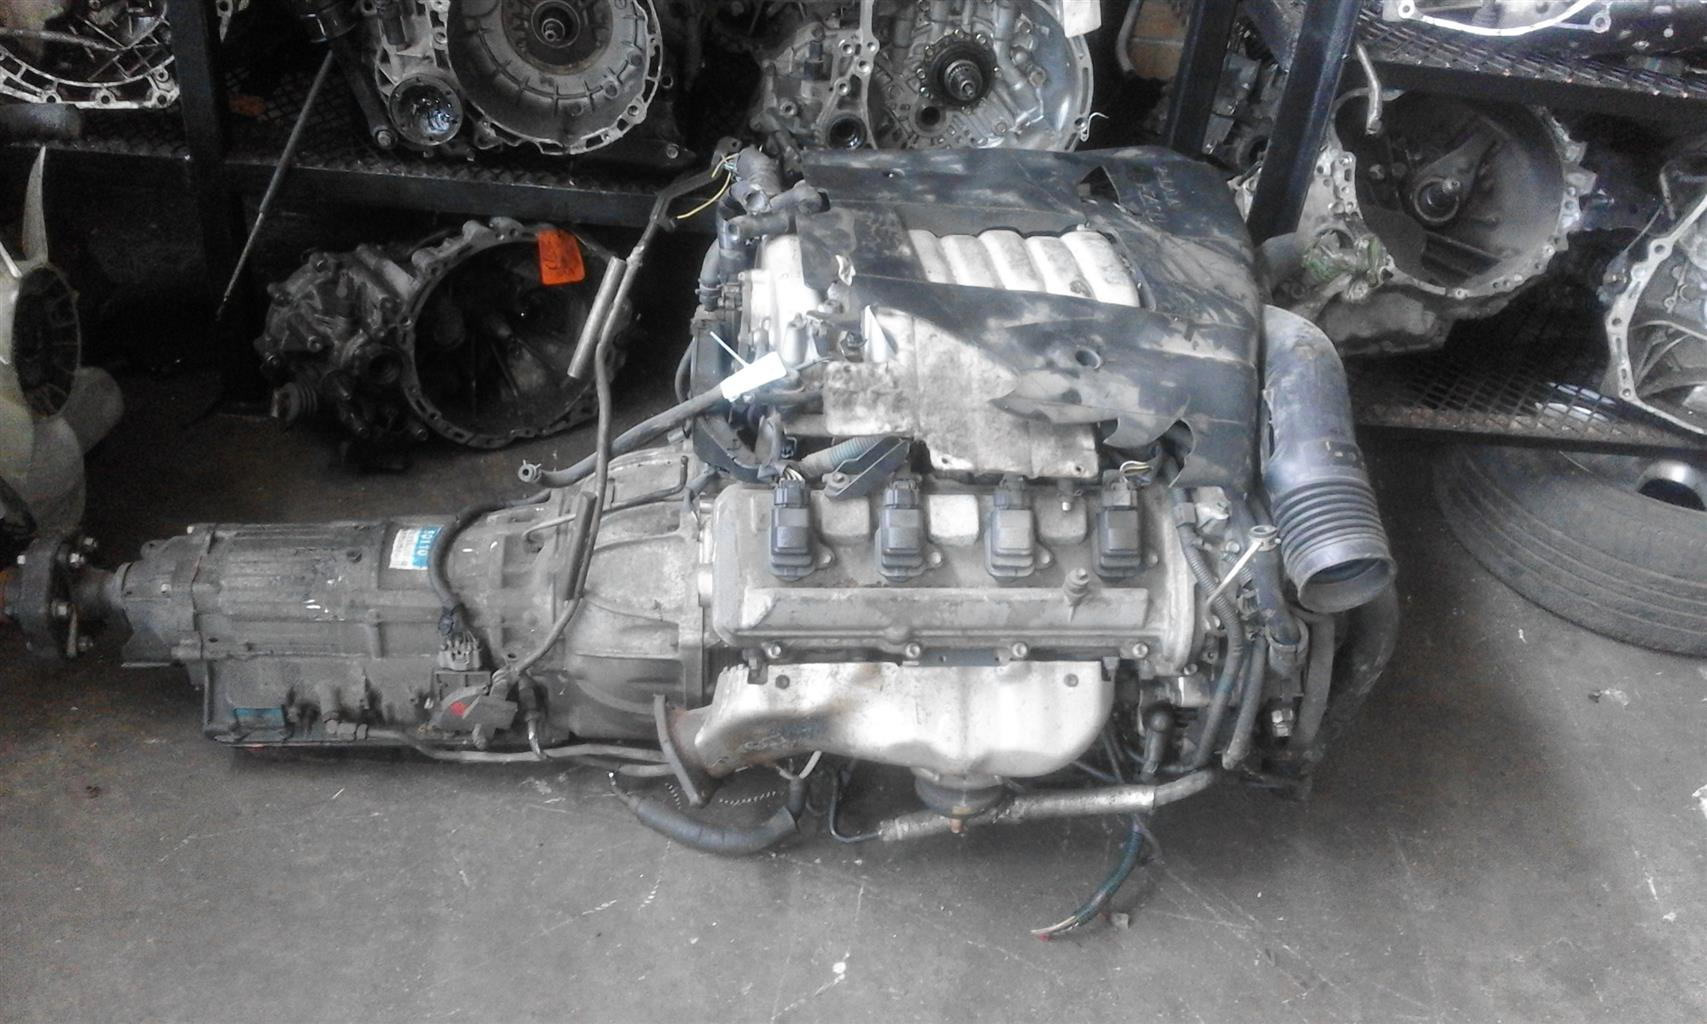 LEXUS V8 NON-VVTI ENGINE + gearbox FOR SALE | Junk Mail